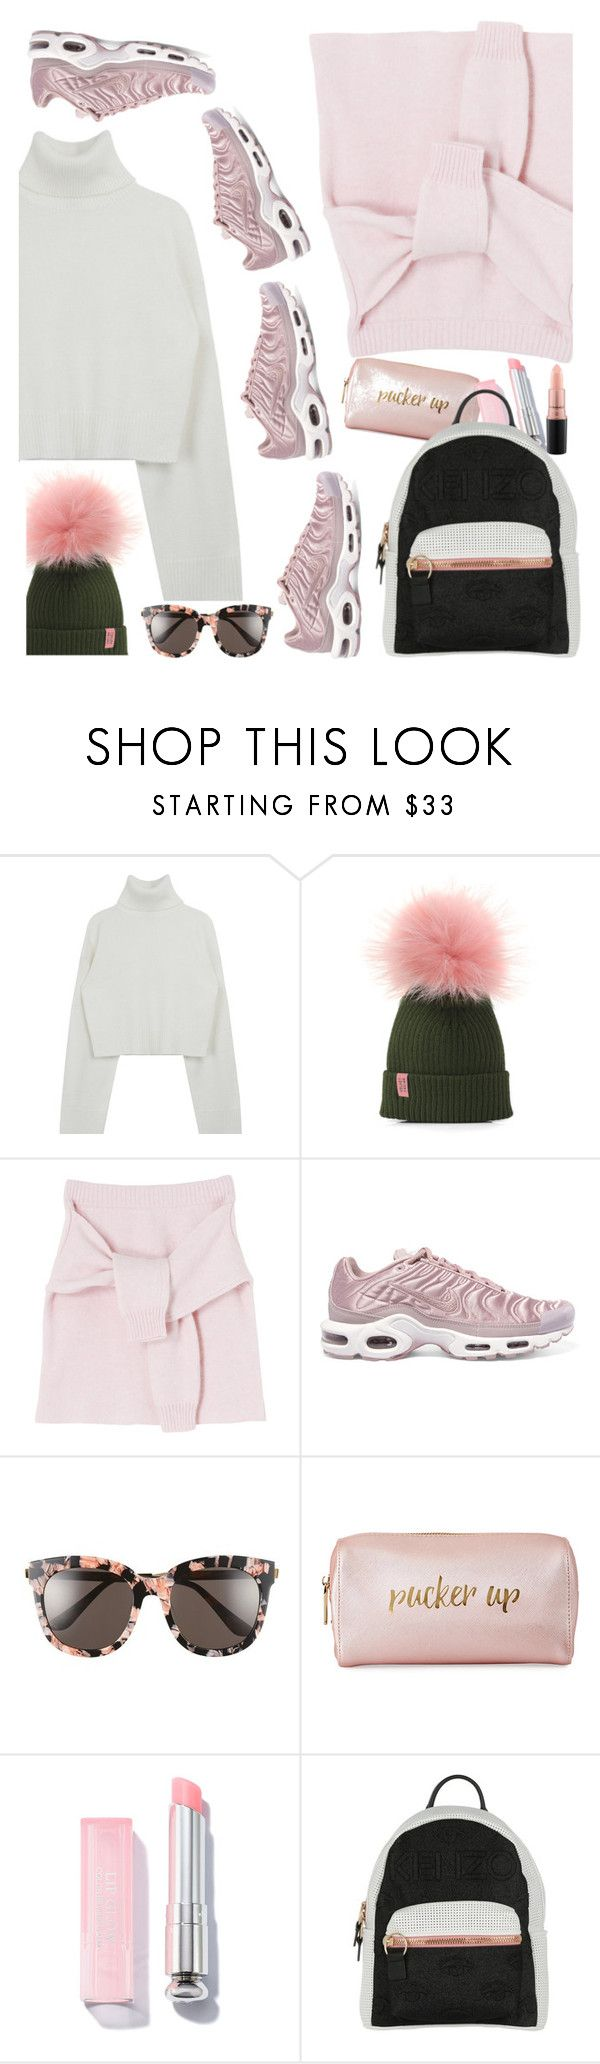 """""""Pink & Grey"""" by petalp ❤ liked on Polyvore featuring NIKE, Gentle Monster, Neiman Marcus, Kenzo, MAC Cosmetics and skirt"""